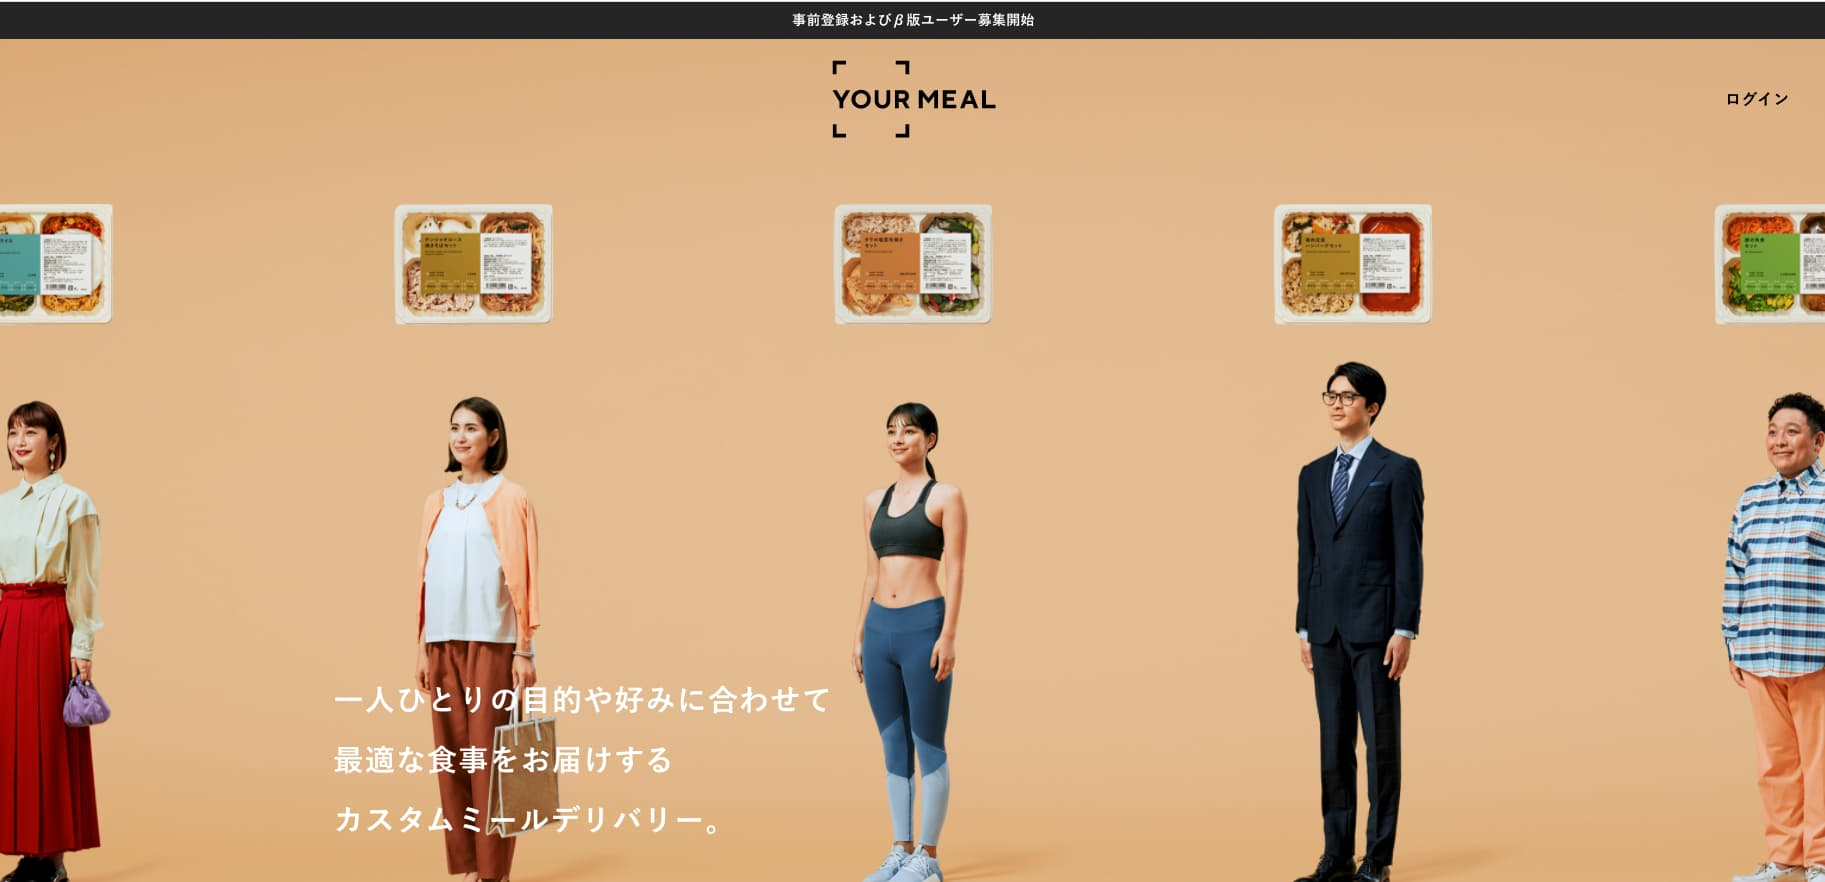 YOURMEALサイトトップ